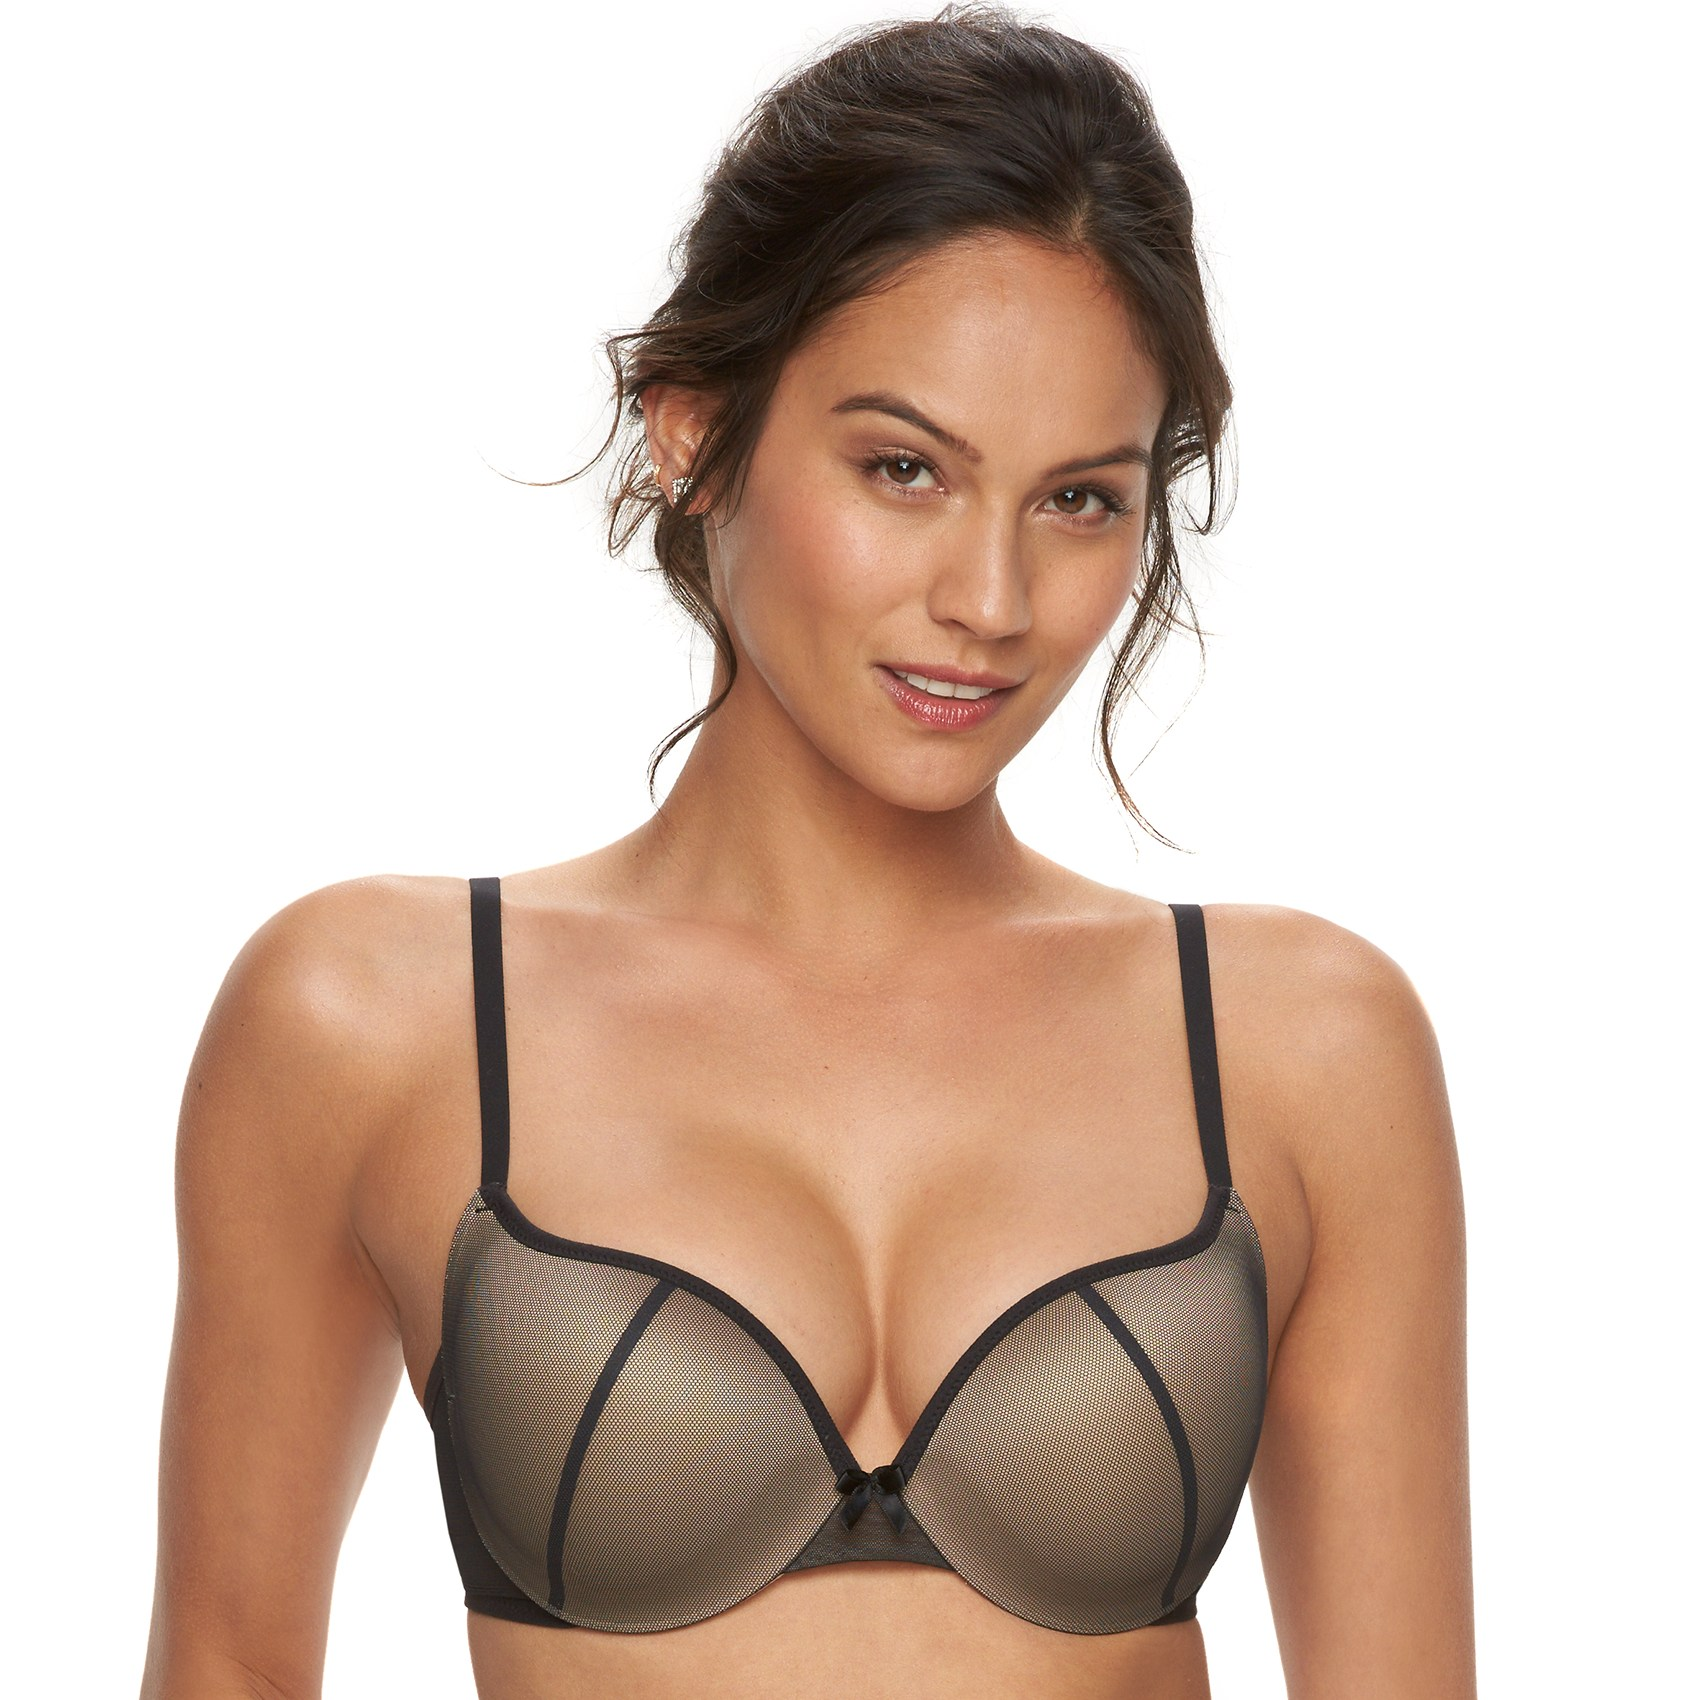 Maidenform Bras: Love the Lift Wonderbra Mesh Push-Up Bra DM9900 | null